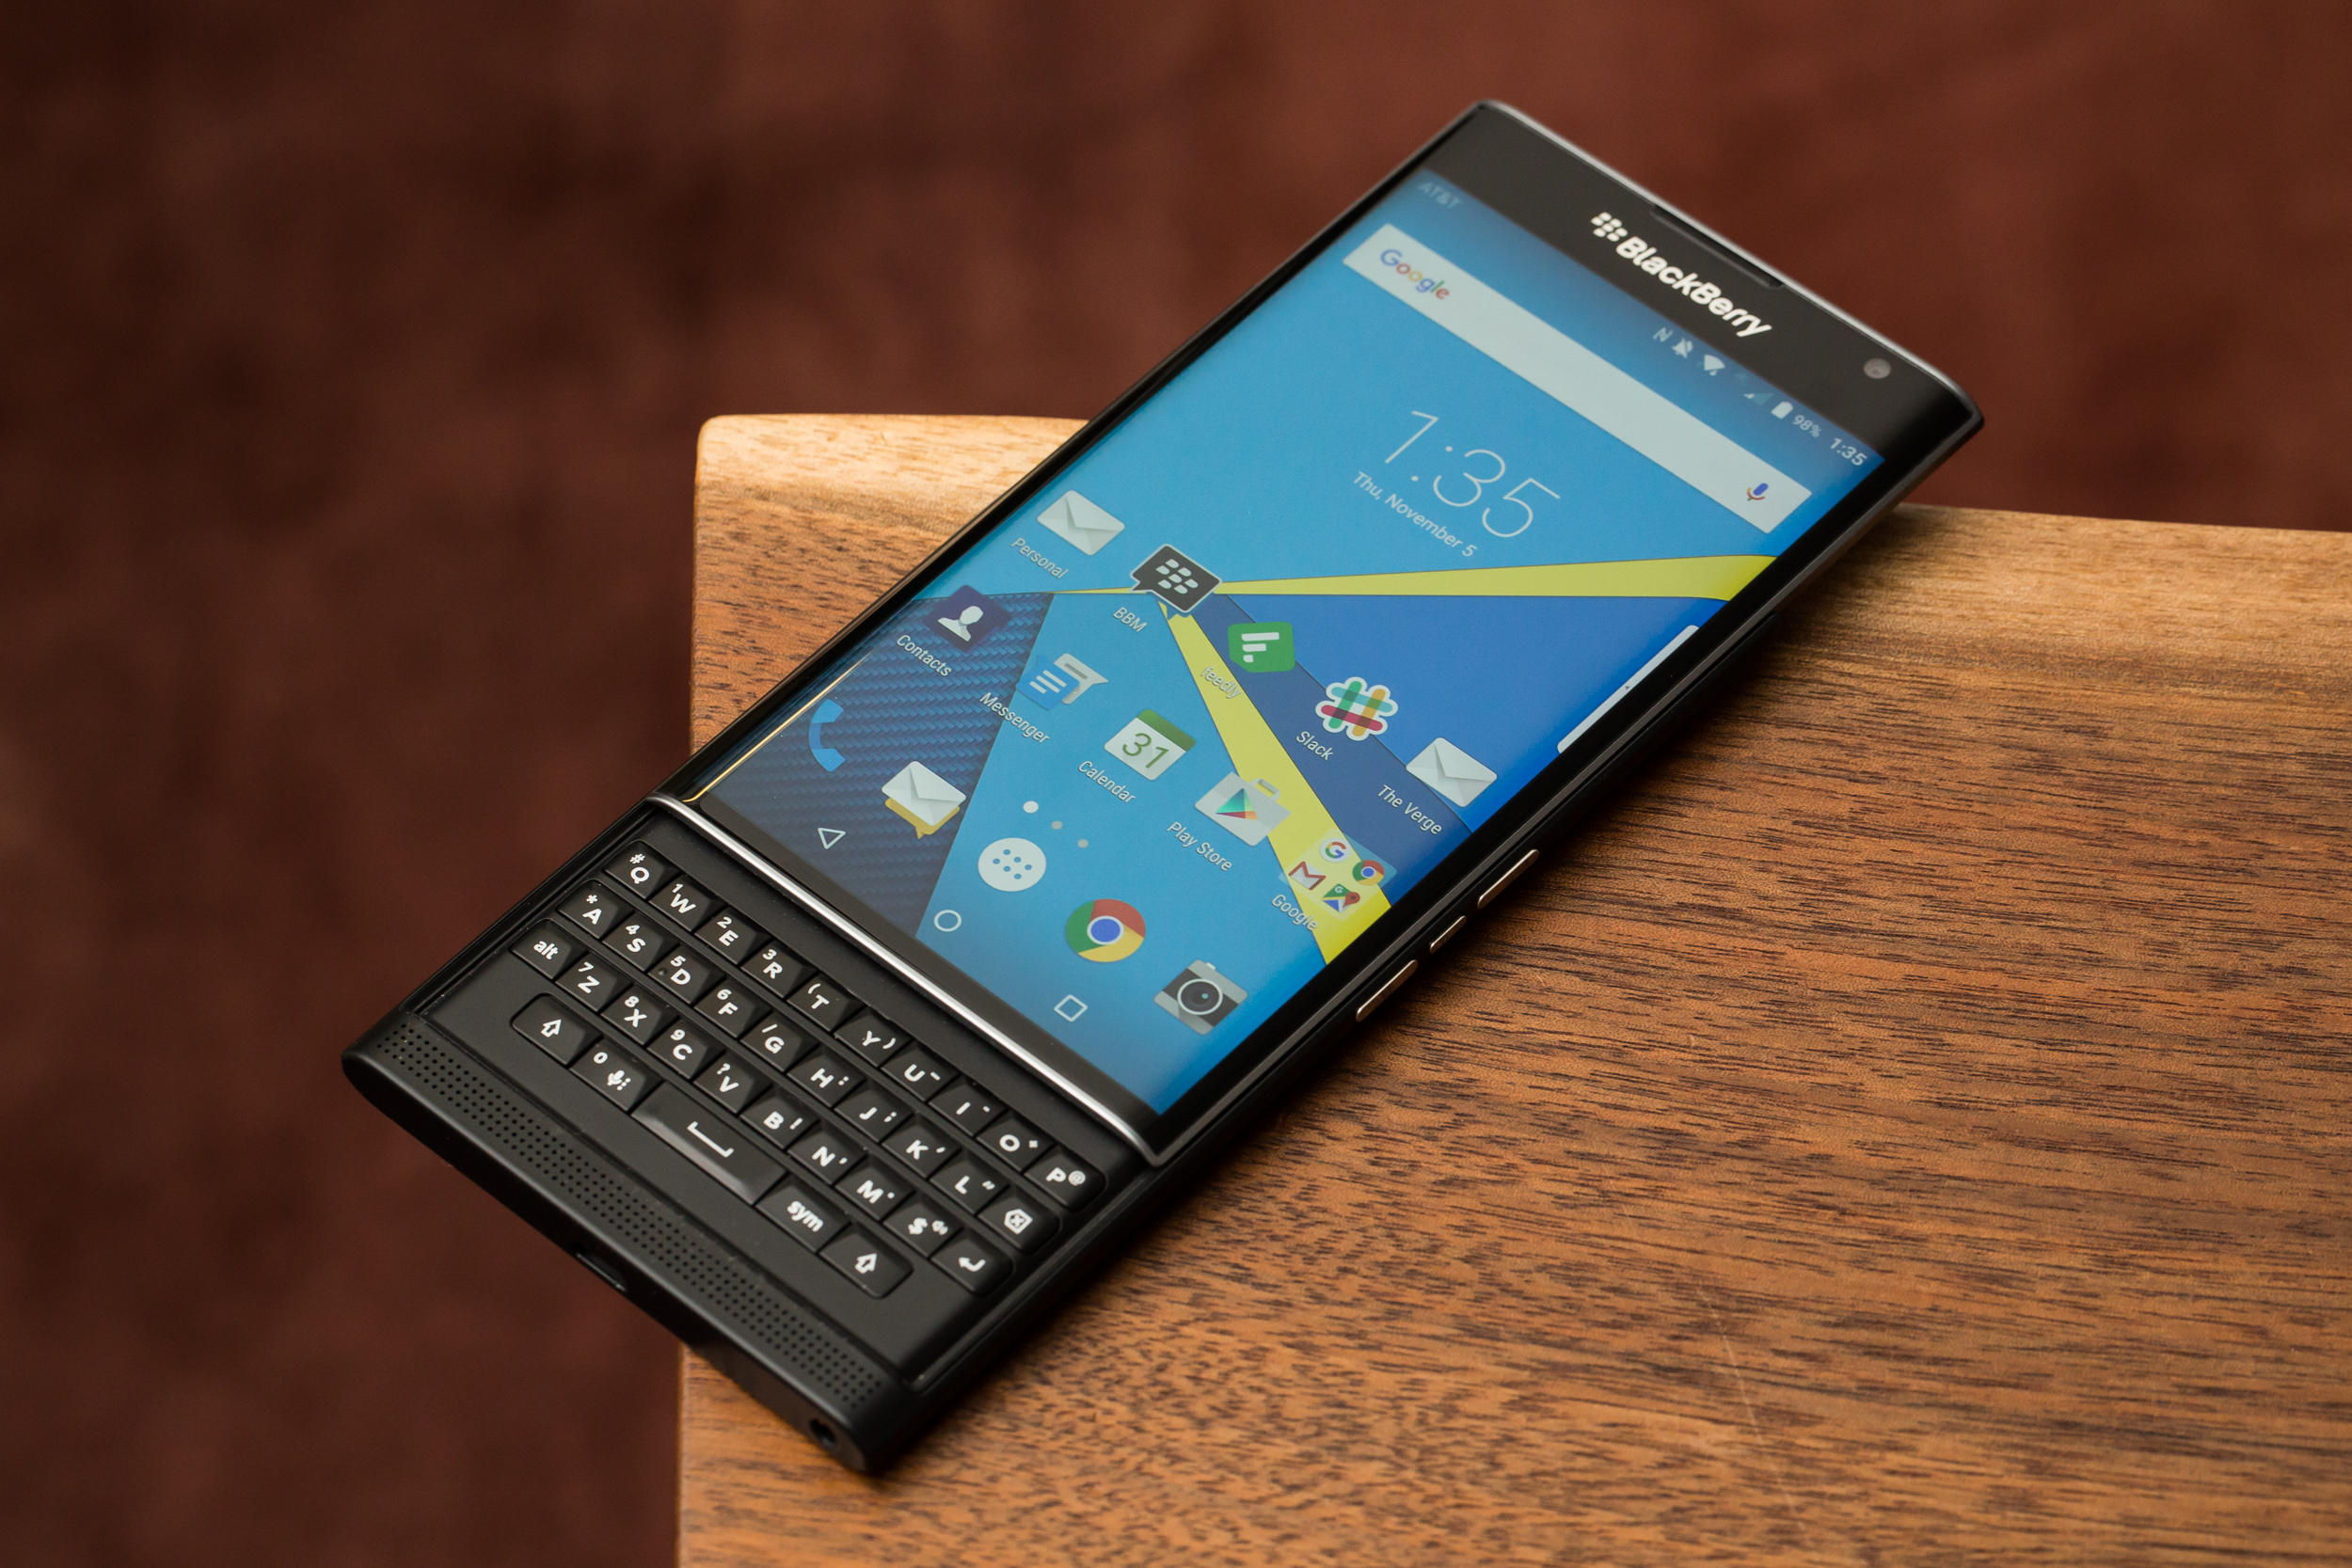 $299.99 Blackberry Priv AT&T Unlocked Smartphone - Black (U.S. Warranty)